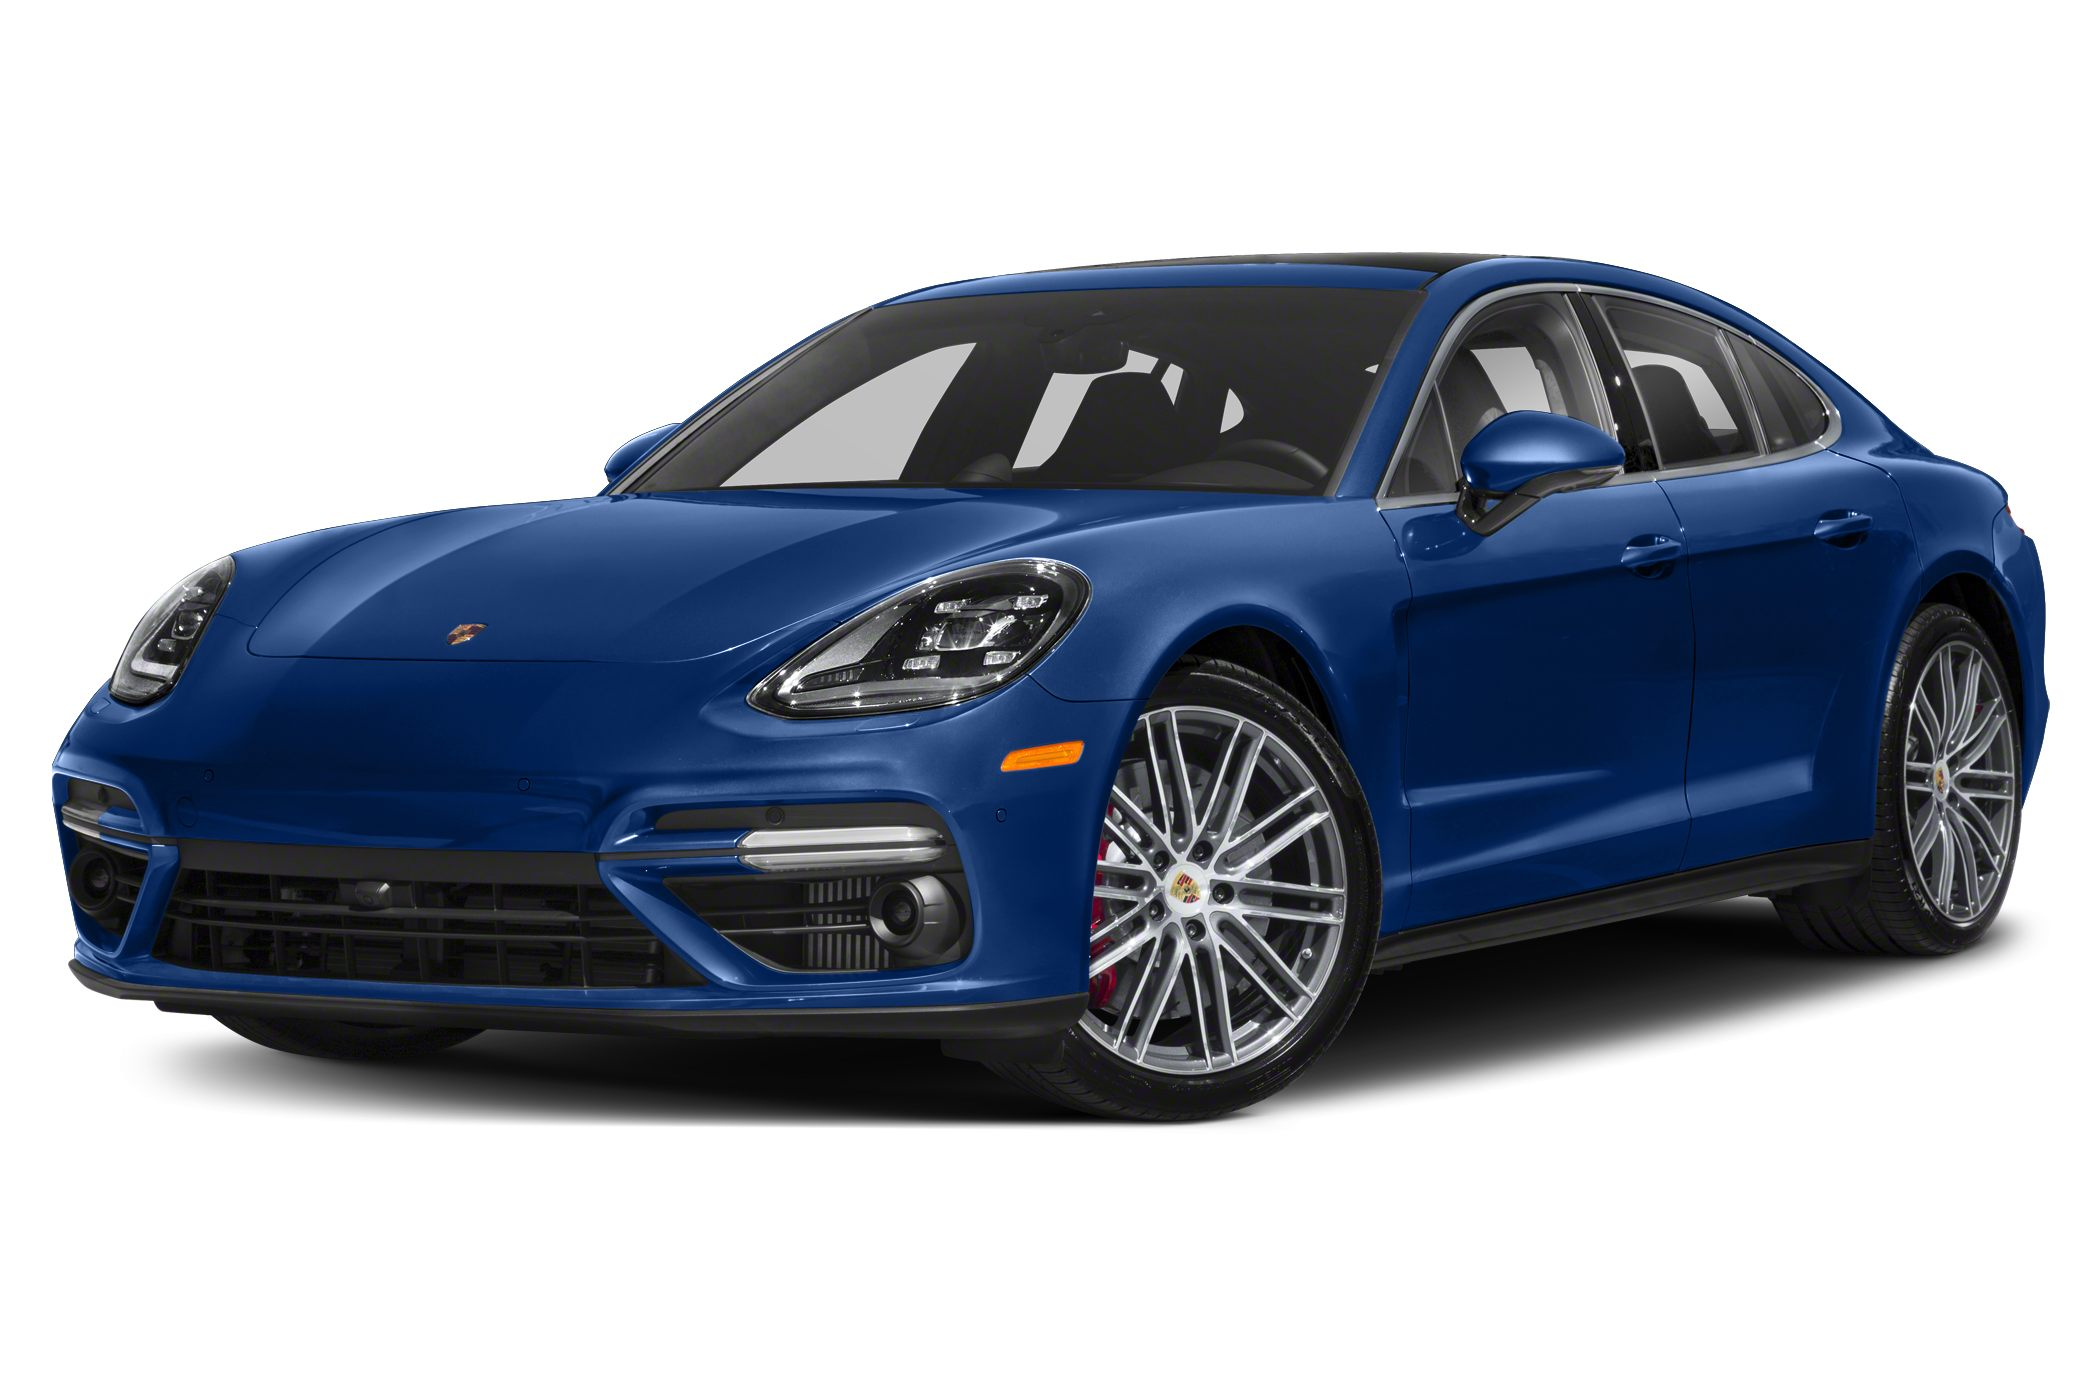 2019 Porsche Panamera Turbo 4dr All-wheel Drive Hatchback